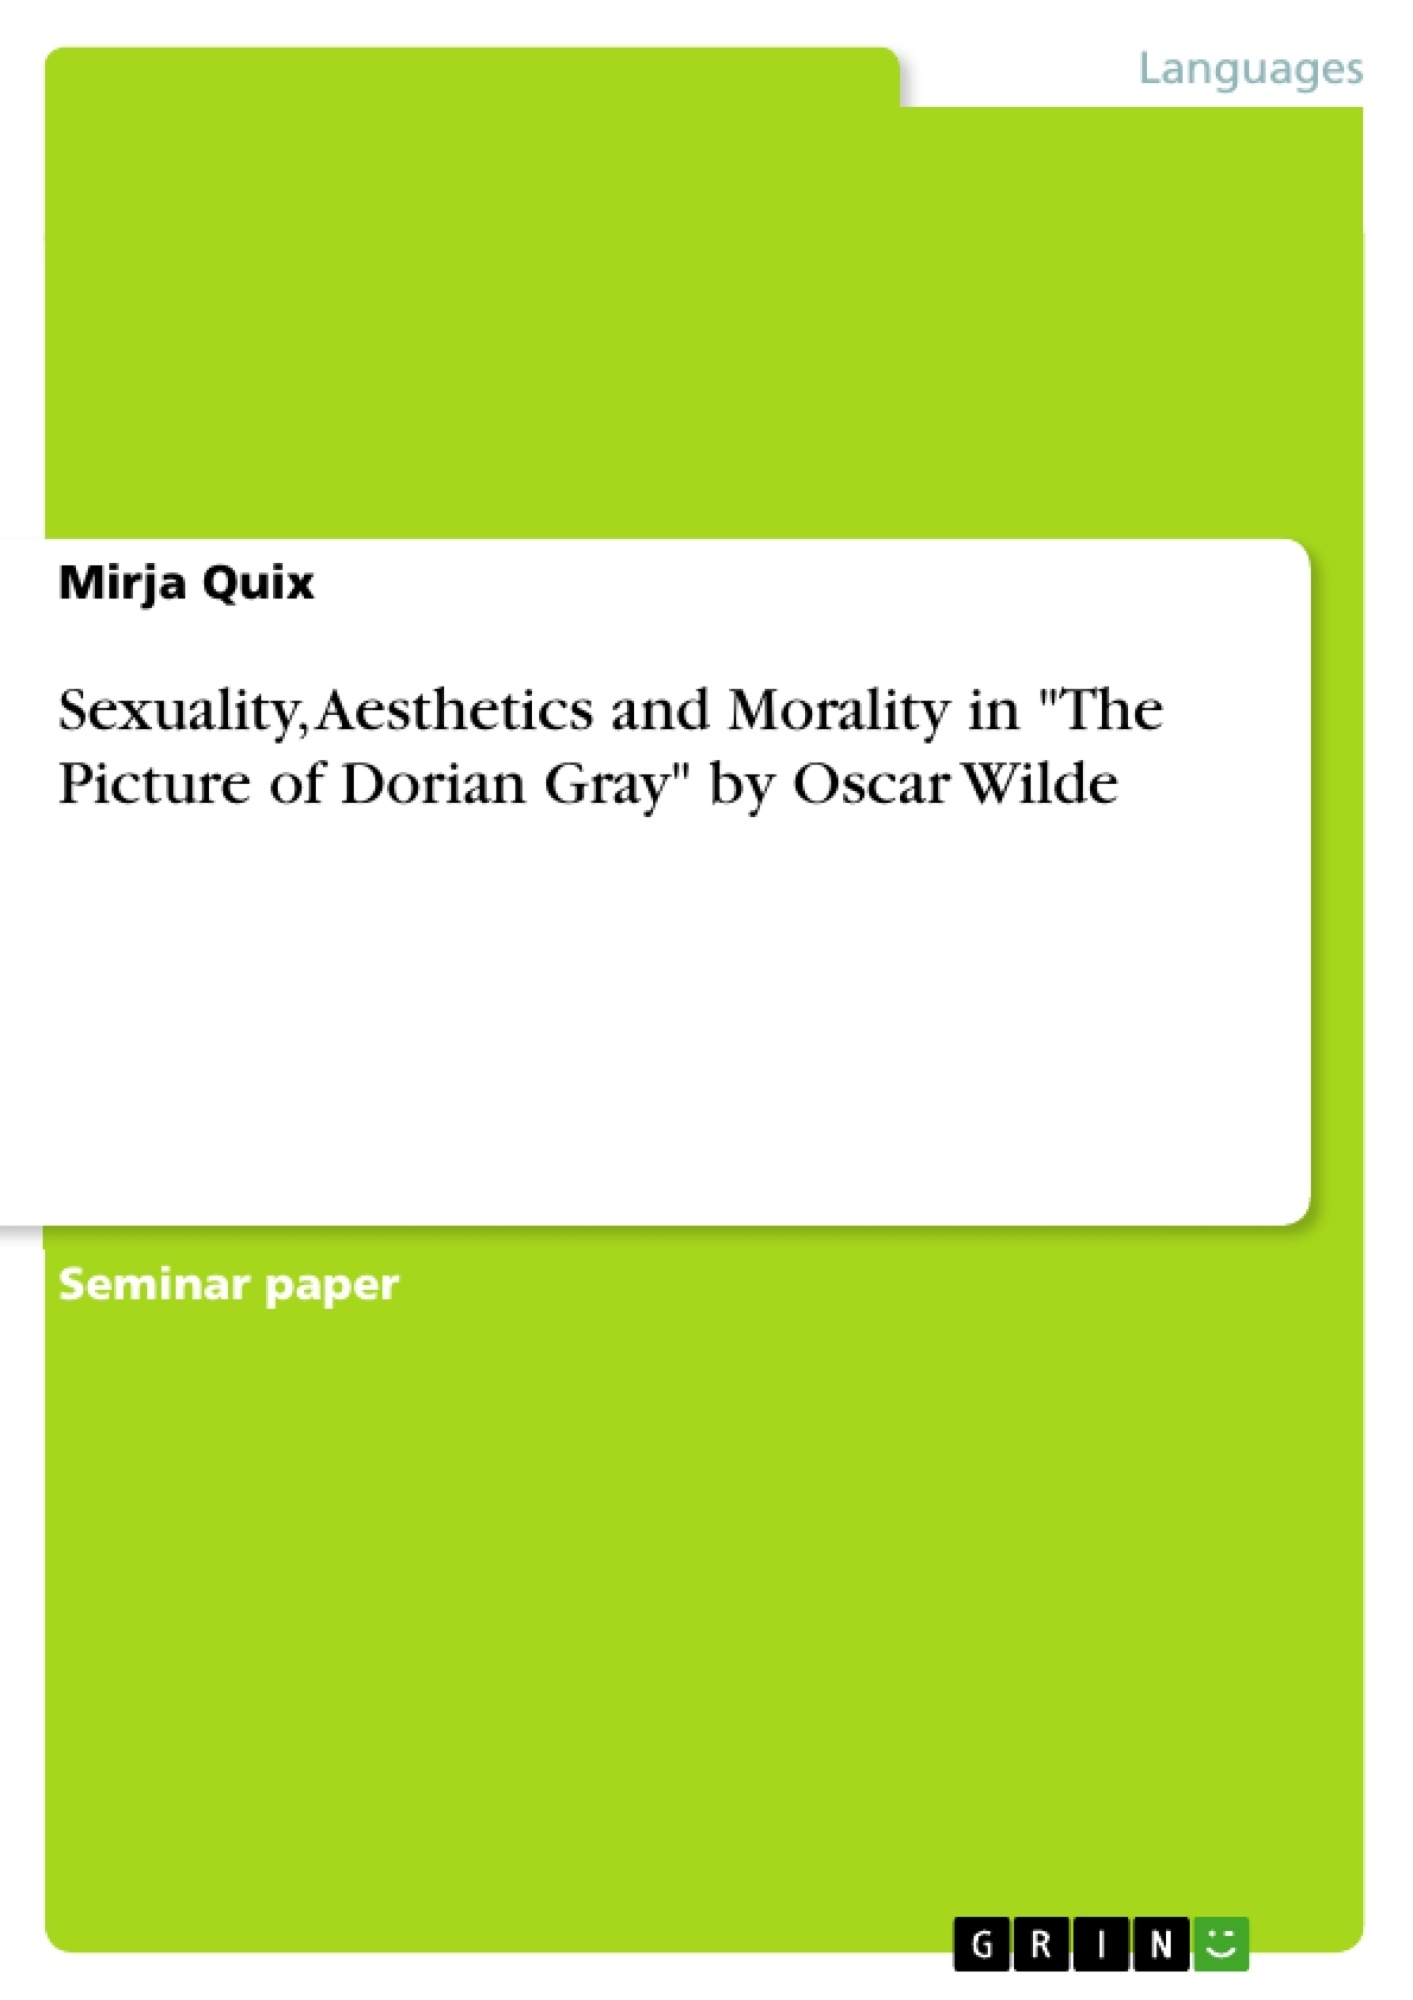 """Title: Sexuality, Aesthetics and Morality in """"The Picture of Dorian Gray"""" by Oscar Wilde"""